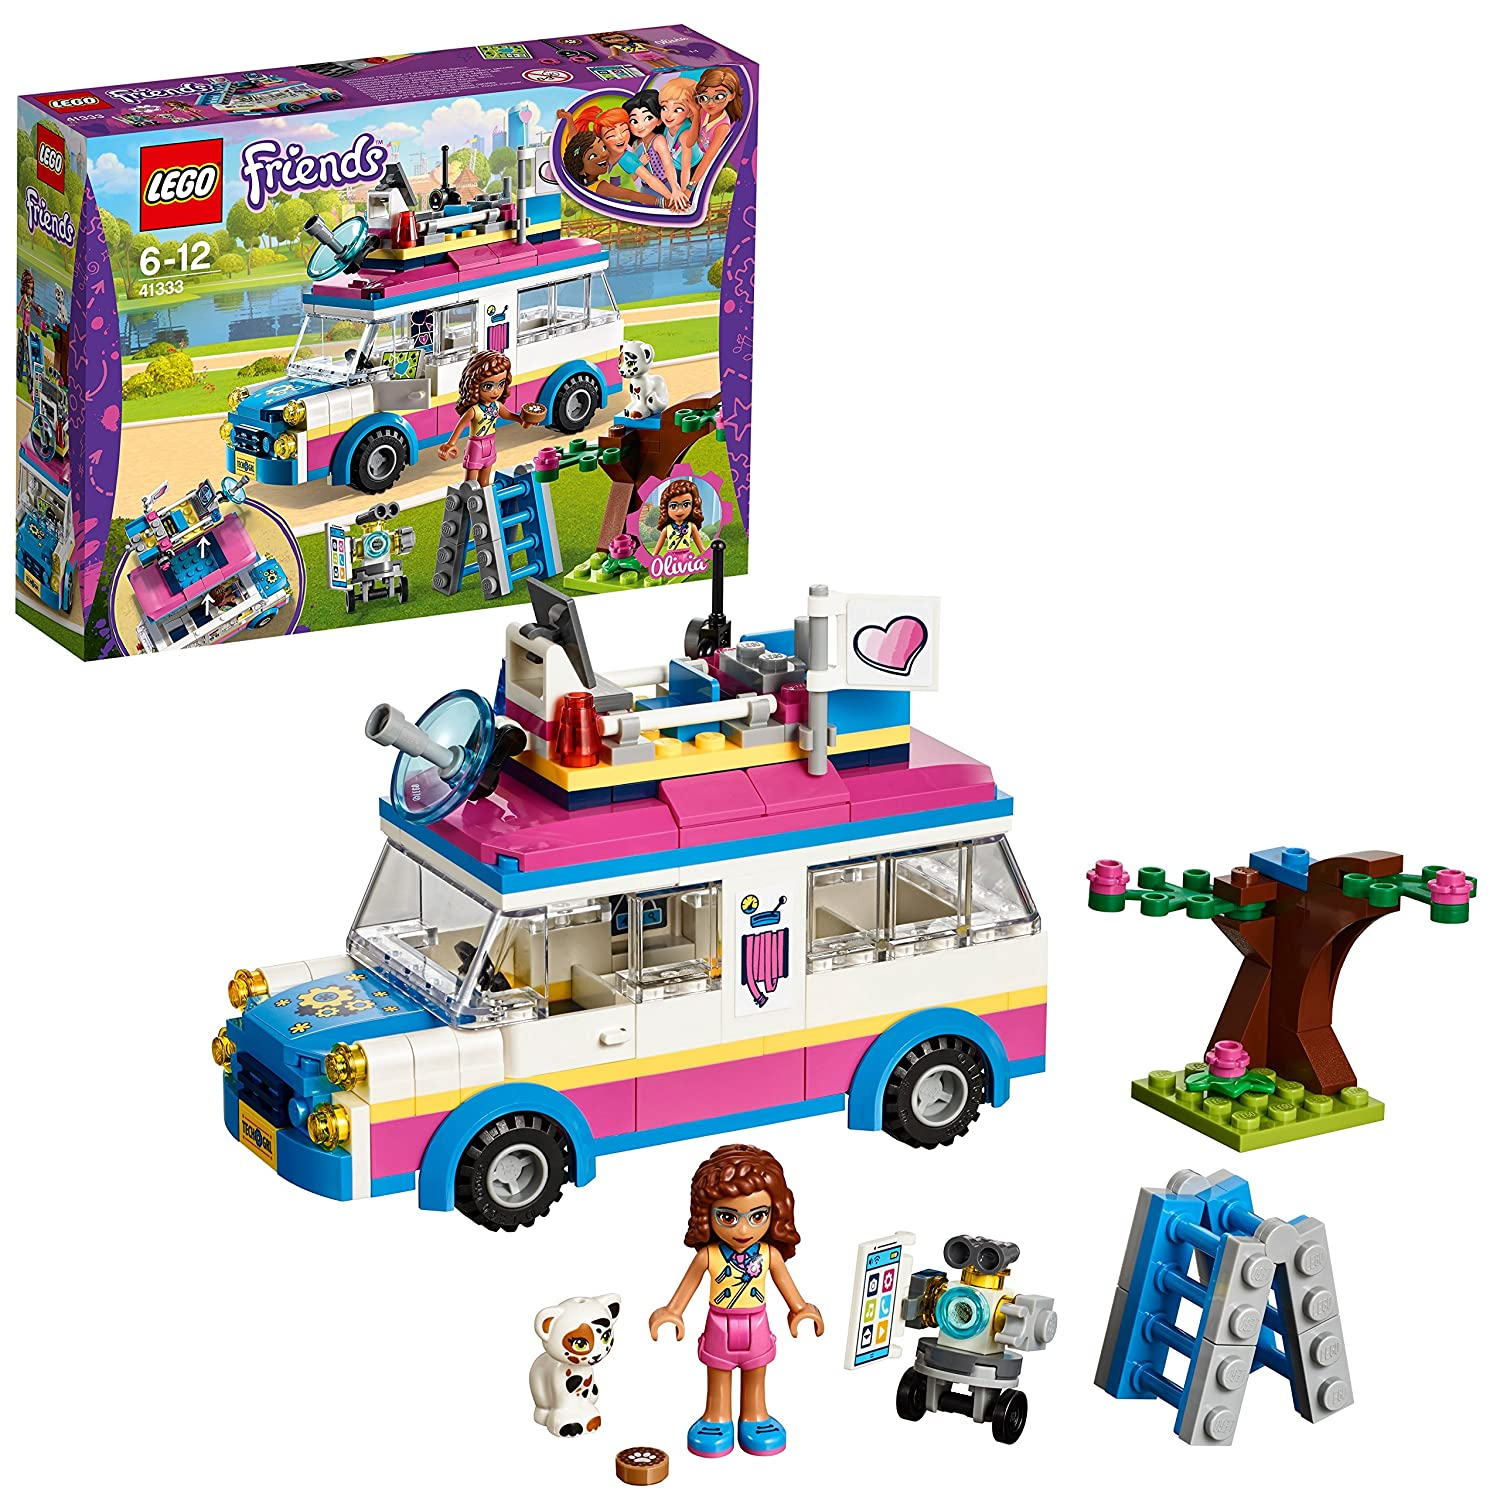 LEGO 41333 Friends Heartlake Olivia's Mission Toy Vehicle, Olivia Mini Doll and Truck Fun Playset for Kids